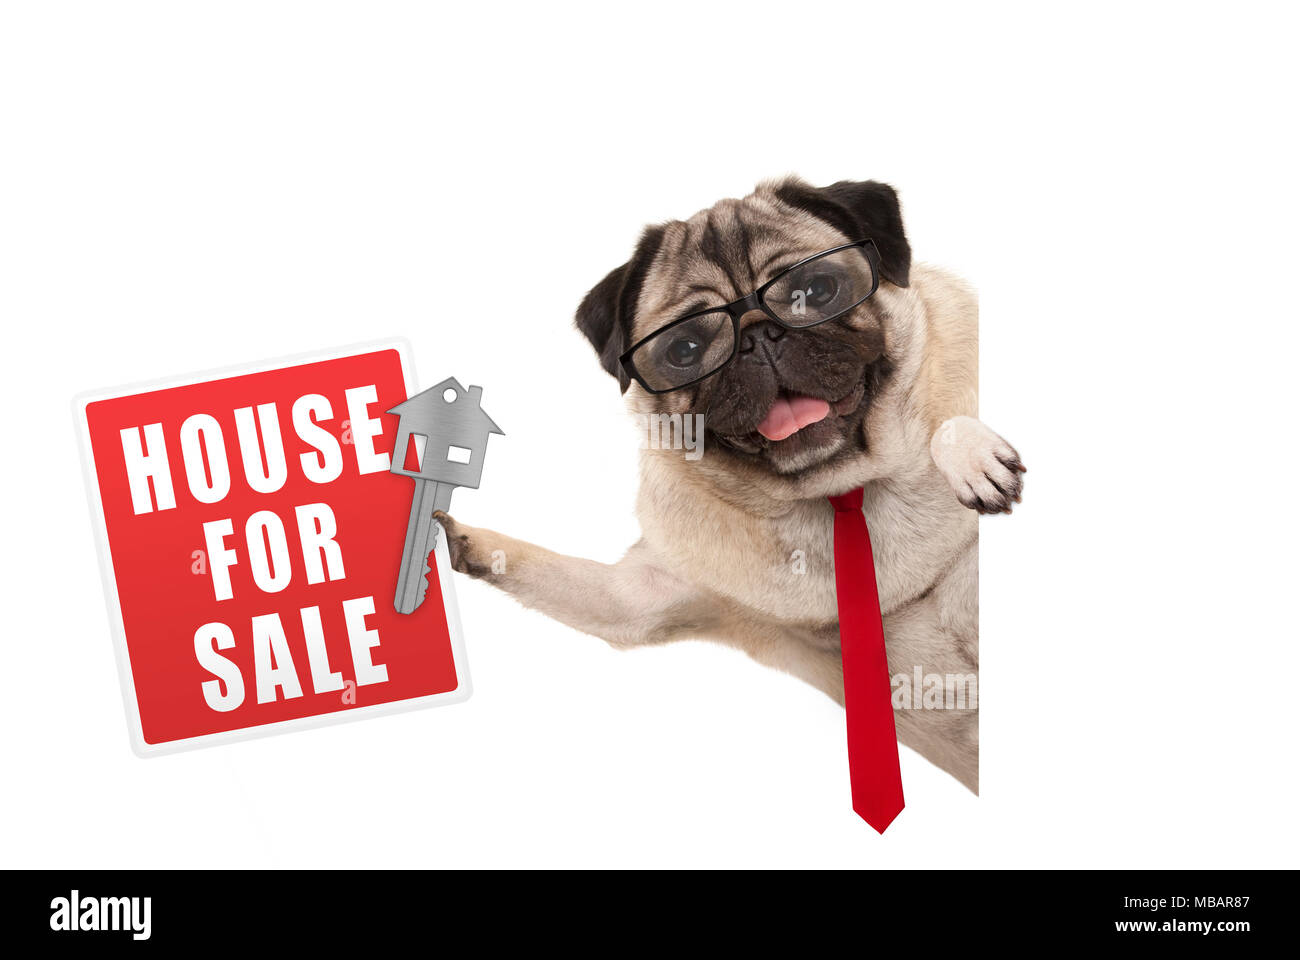 happy business pug dog witg glasses and tie, holding up red house for sale sign and key, isolated on white background Stock Photo